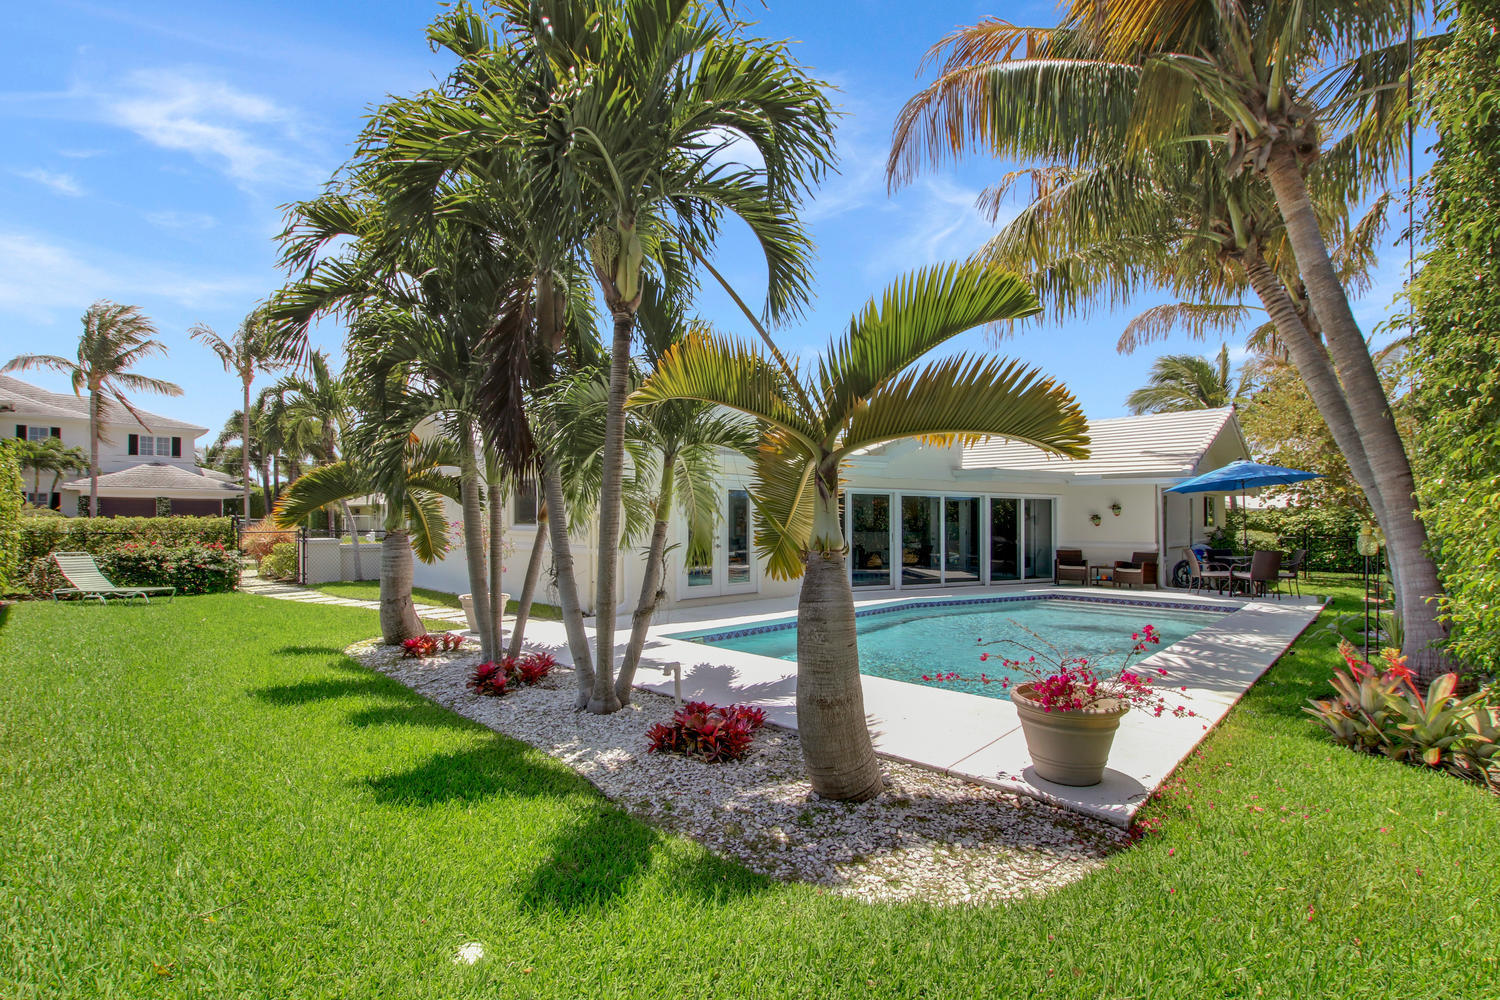 New Home for sale at 1110 Gulfstream Way in Singer Island